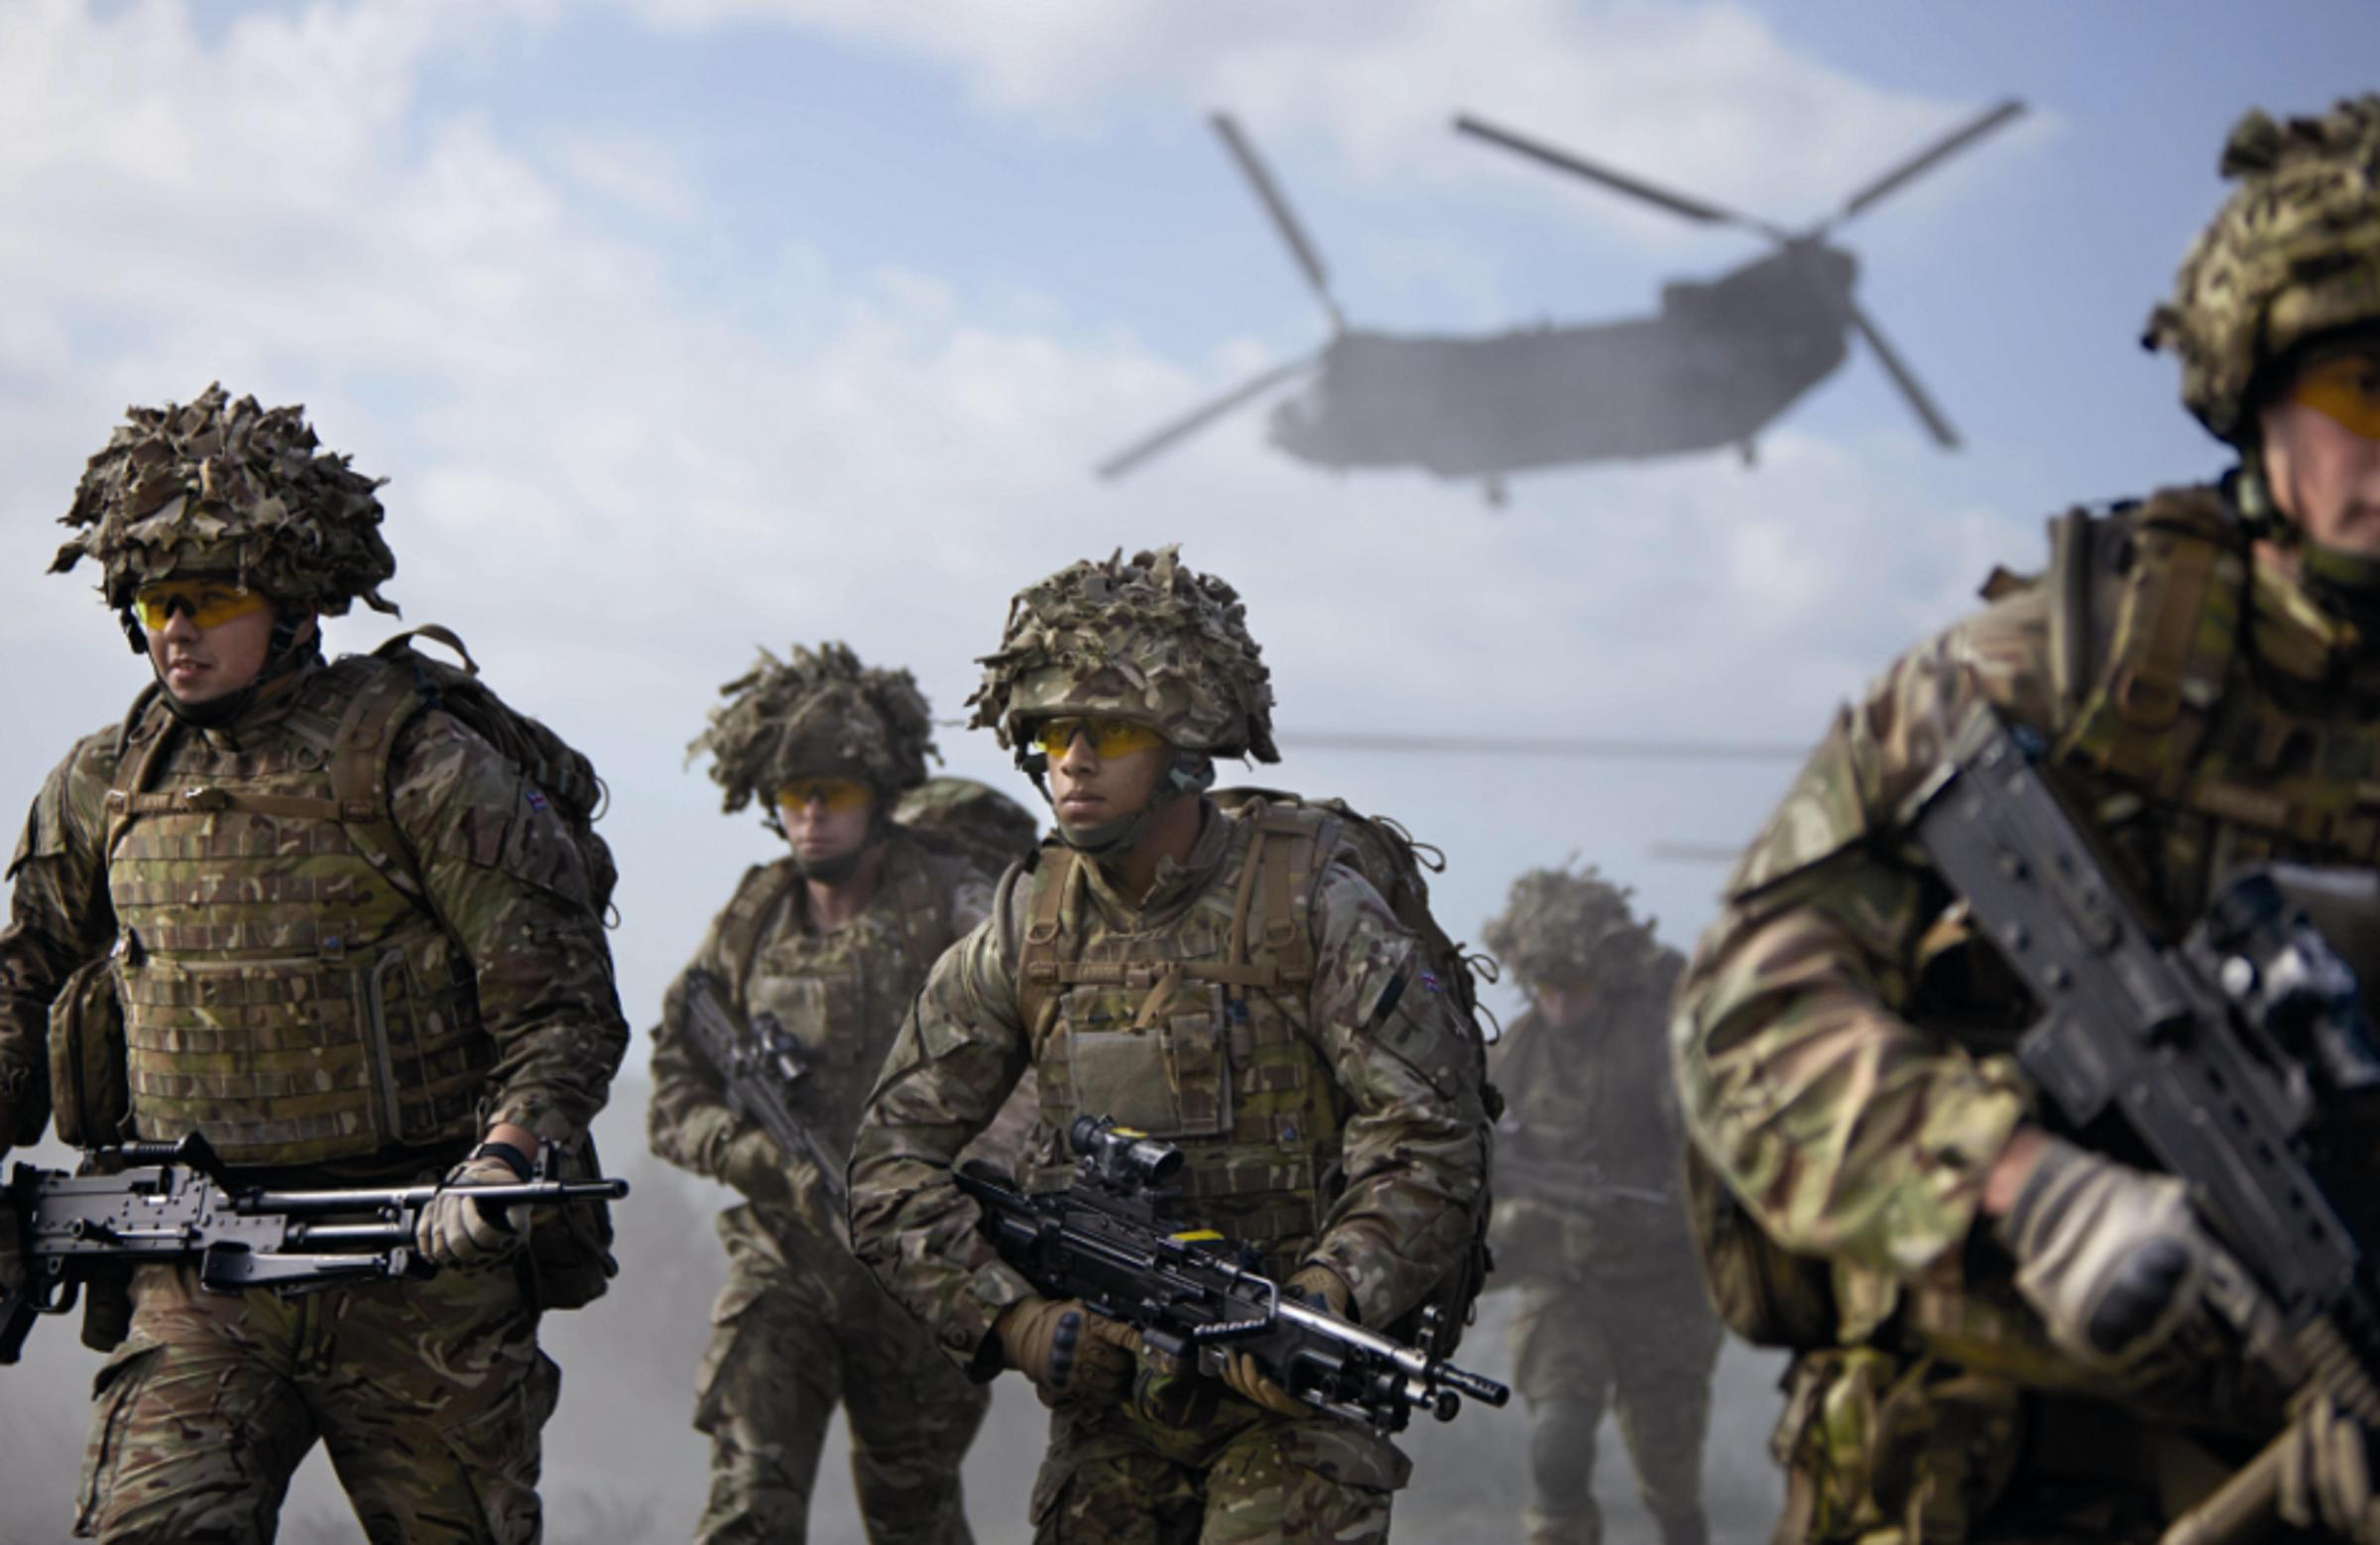 An army recruitment event will be held in Ewell as part of its More Than Meets the Eye campaign